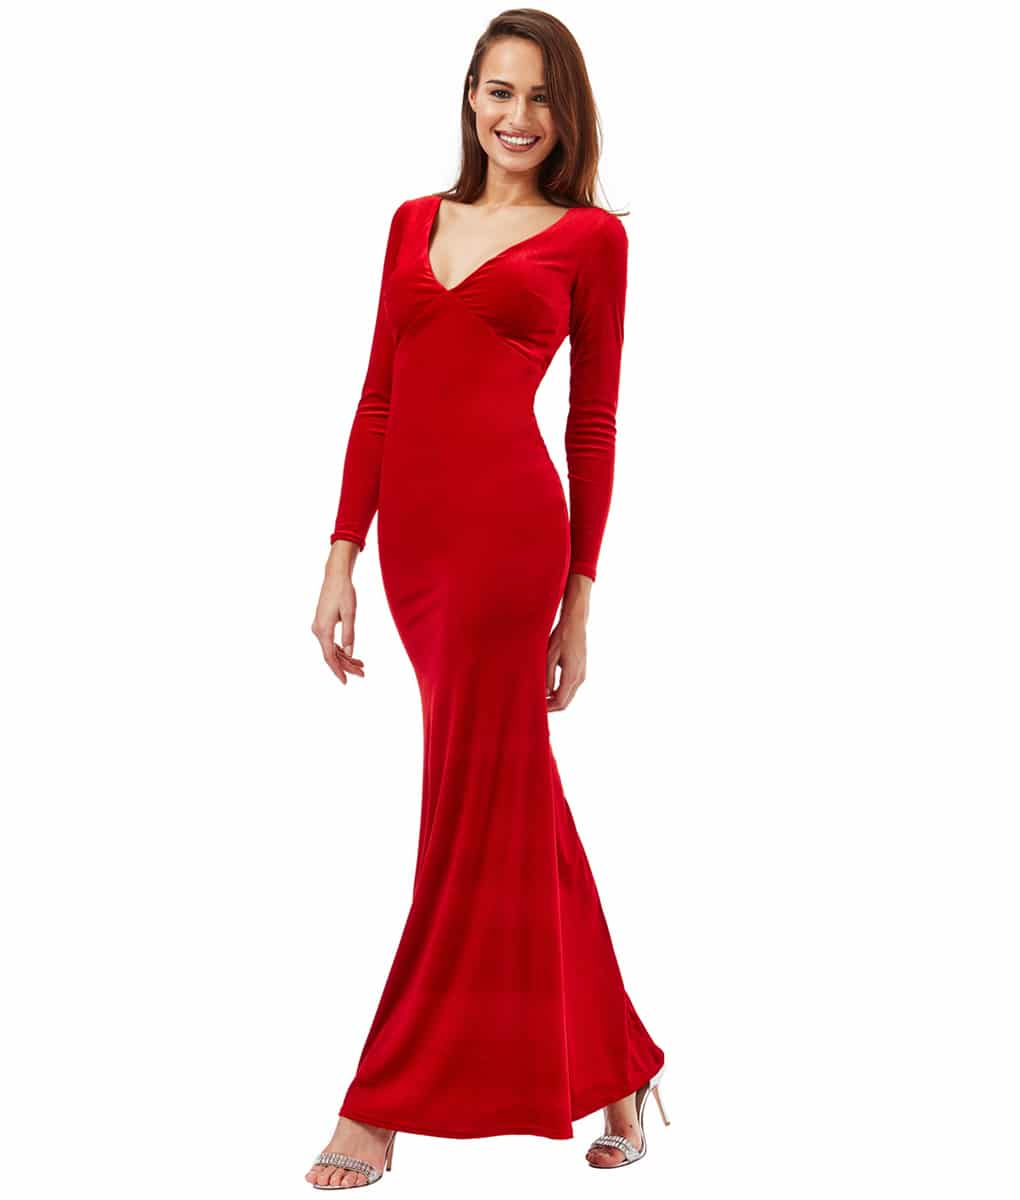 City Goddess - Red Velvet Gown | Alila Boutique